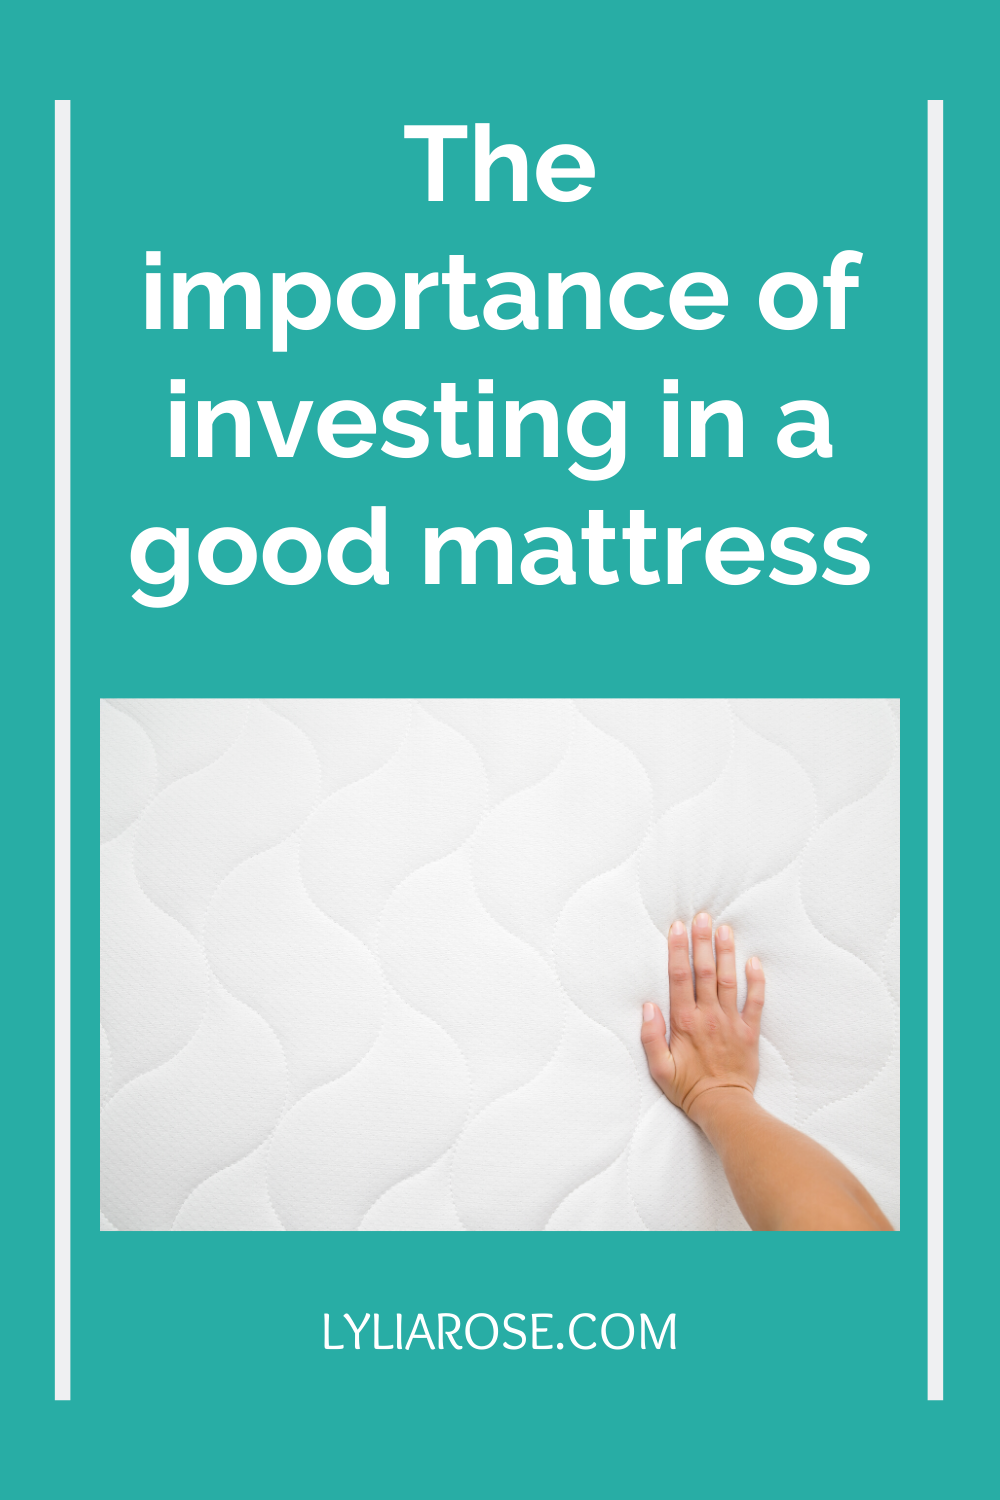 The importance of investing in a good mattress